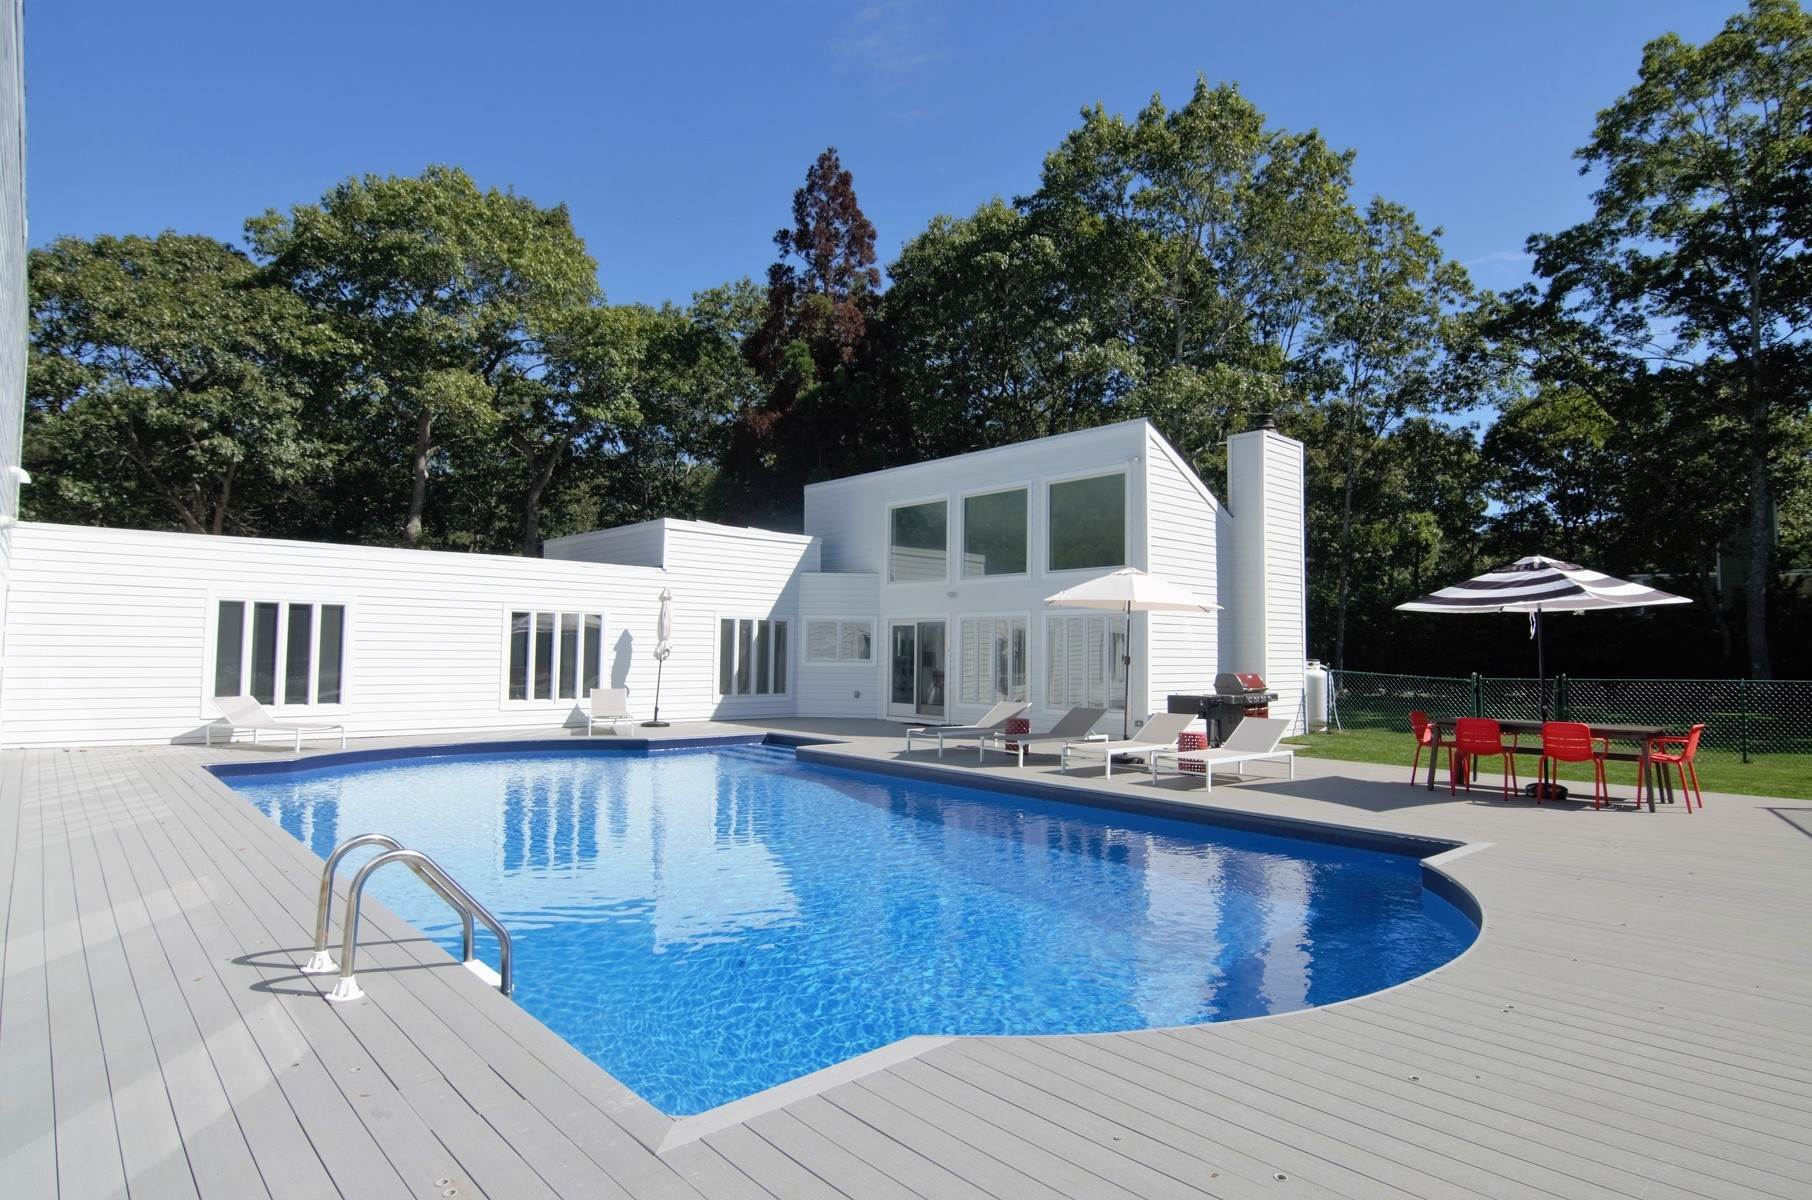 Single Family Home at Renovated Quogue Village - Pool & Tennis Quogue Village, NY 11959